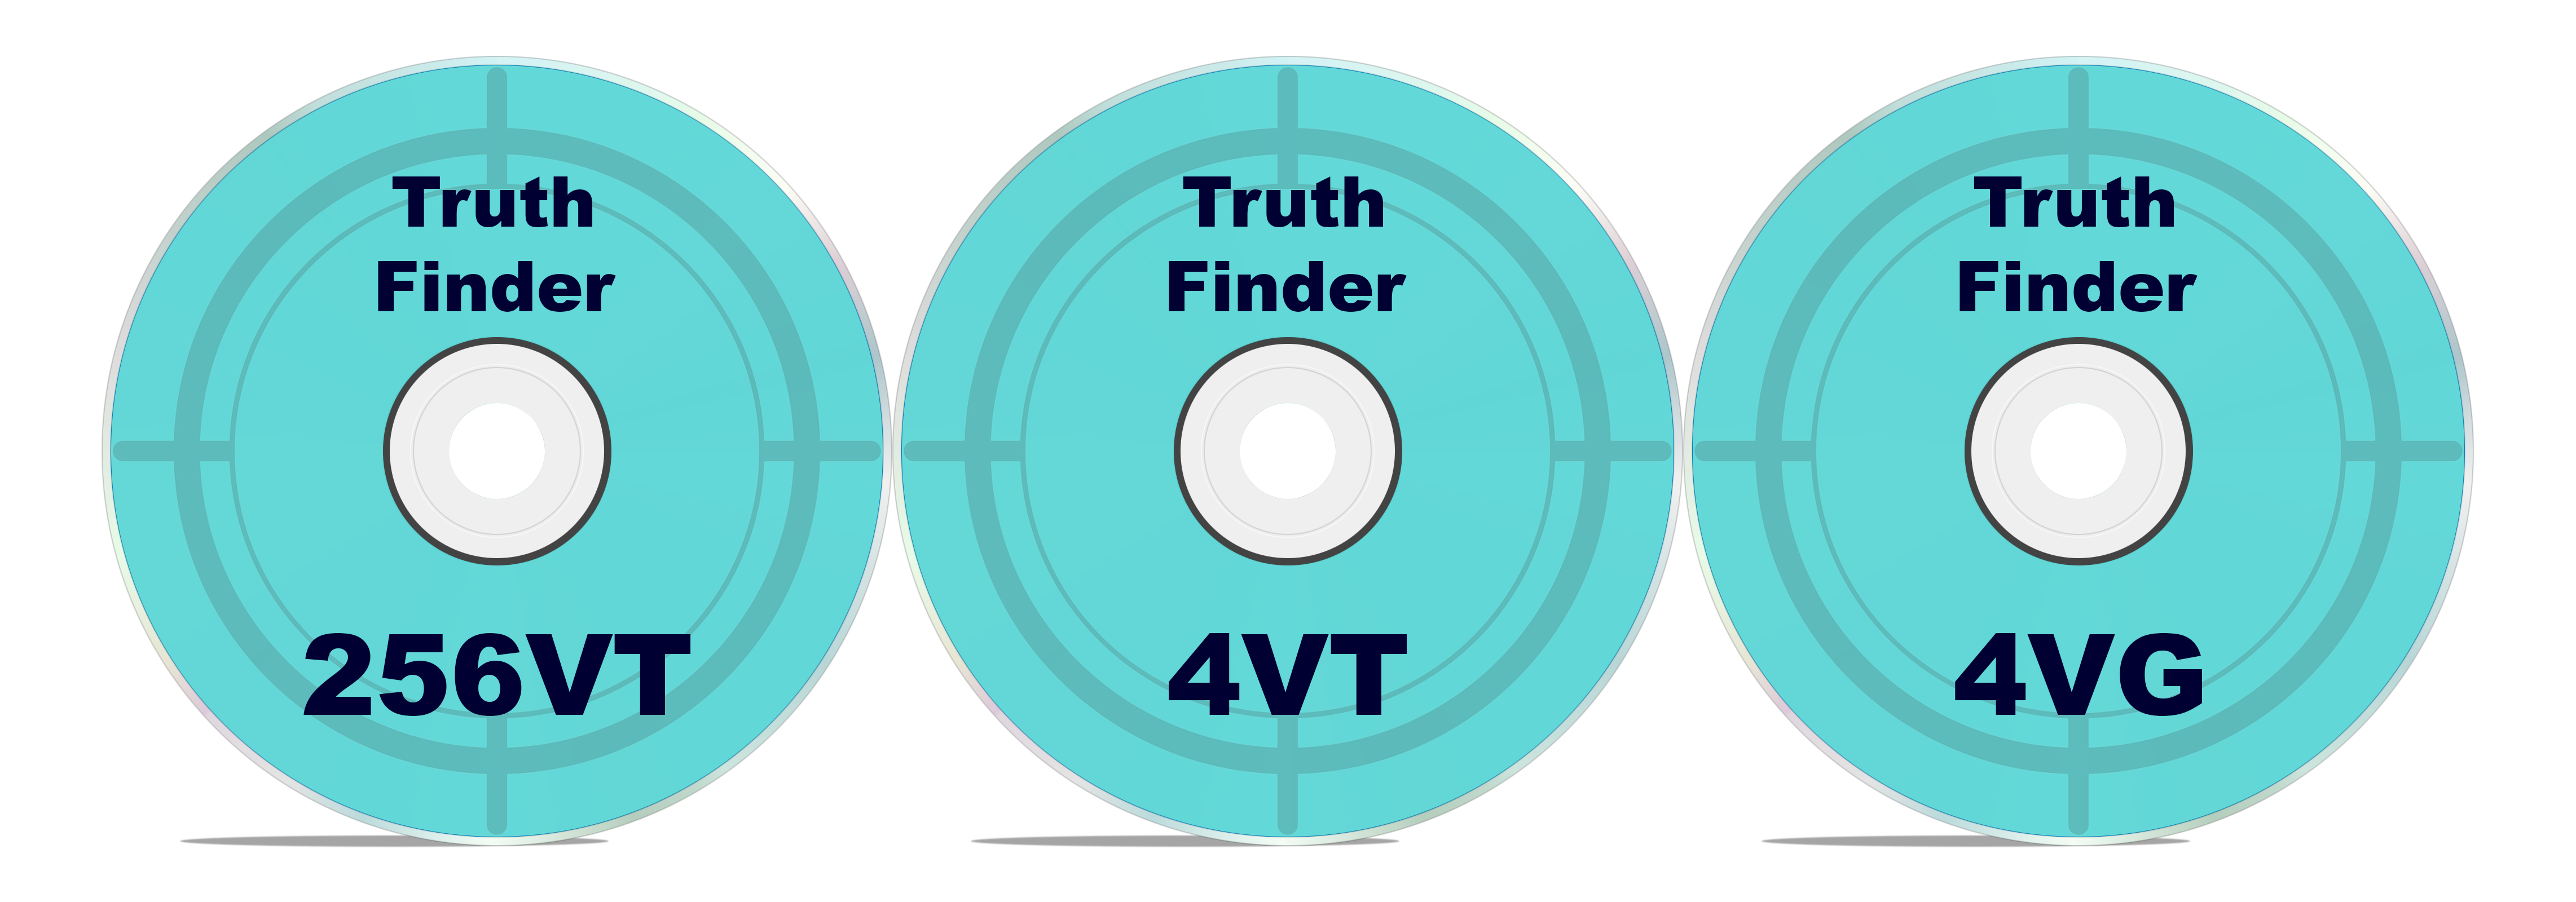 Truth Finder